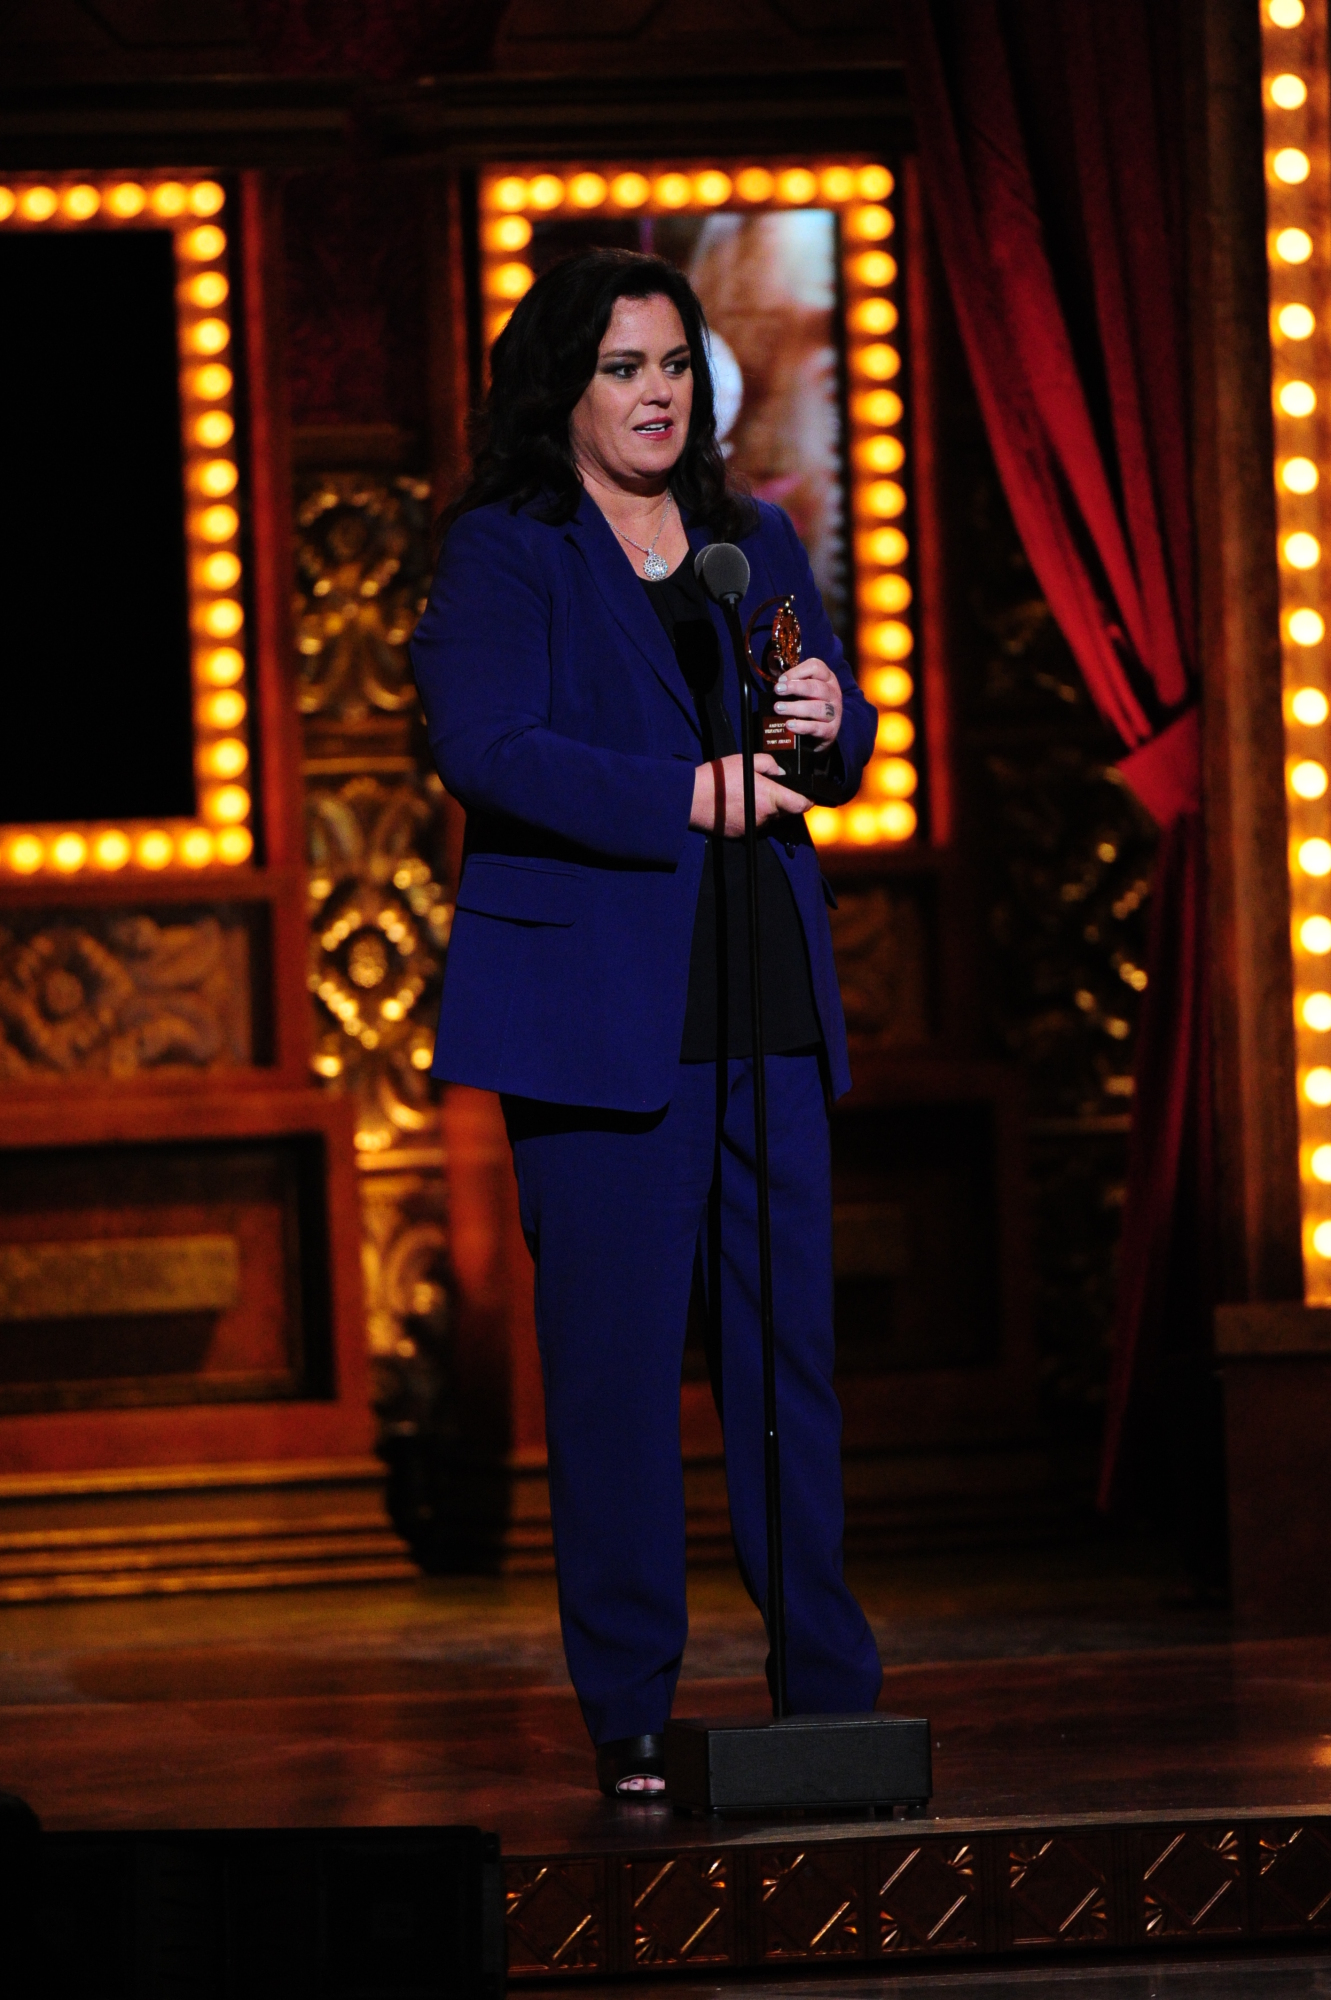 Rosie O'Donnell, 2014 recipient of the Isabelle Stevenson Award - 2014 Tony Awards